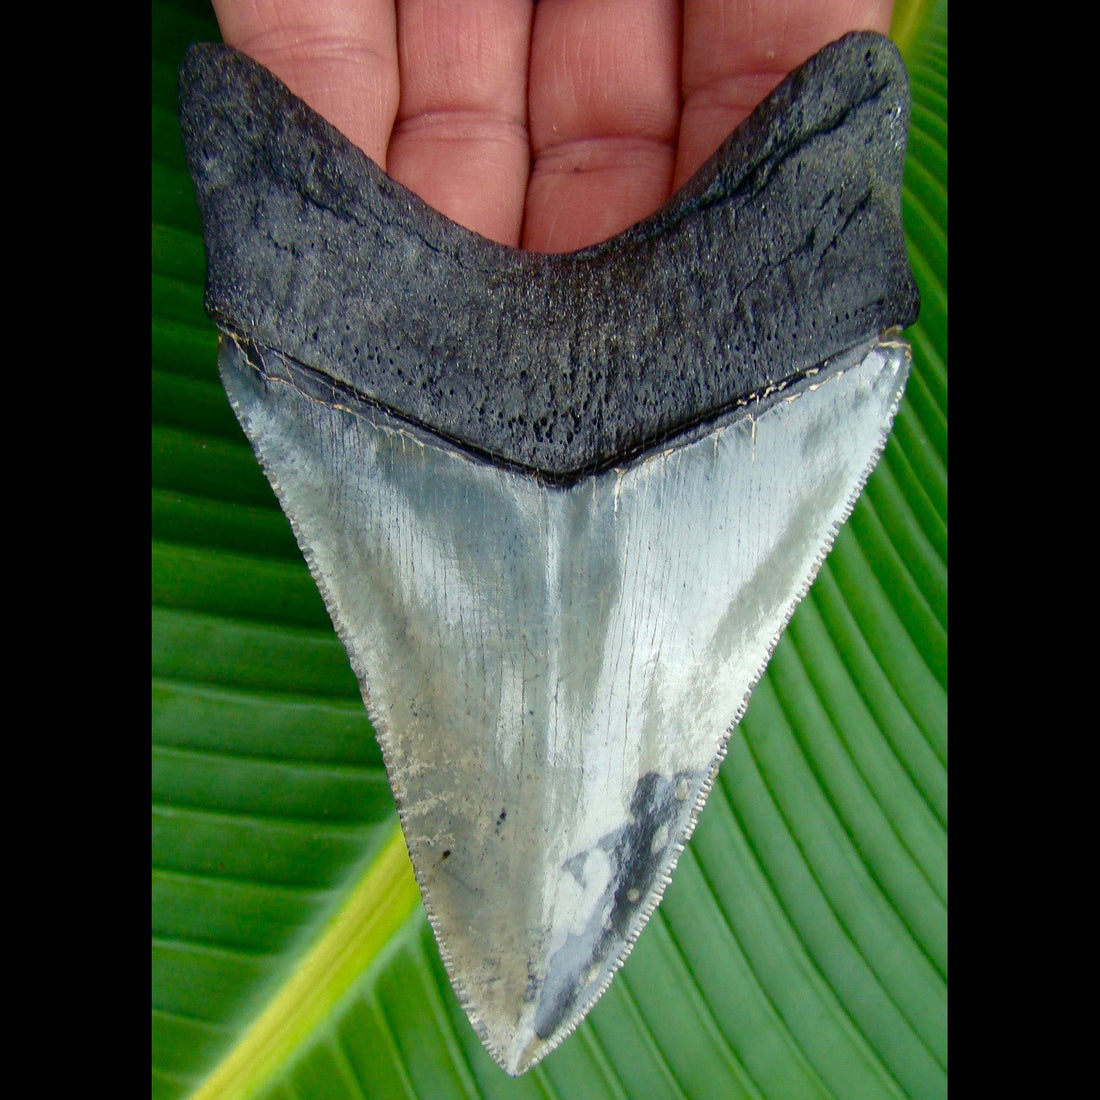 Megalodon Tooth 4 & 3/8 in. Venice Beach, Florida Megalodon Shark Tooth